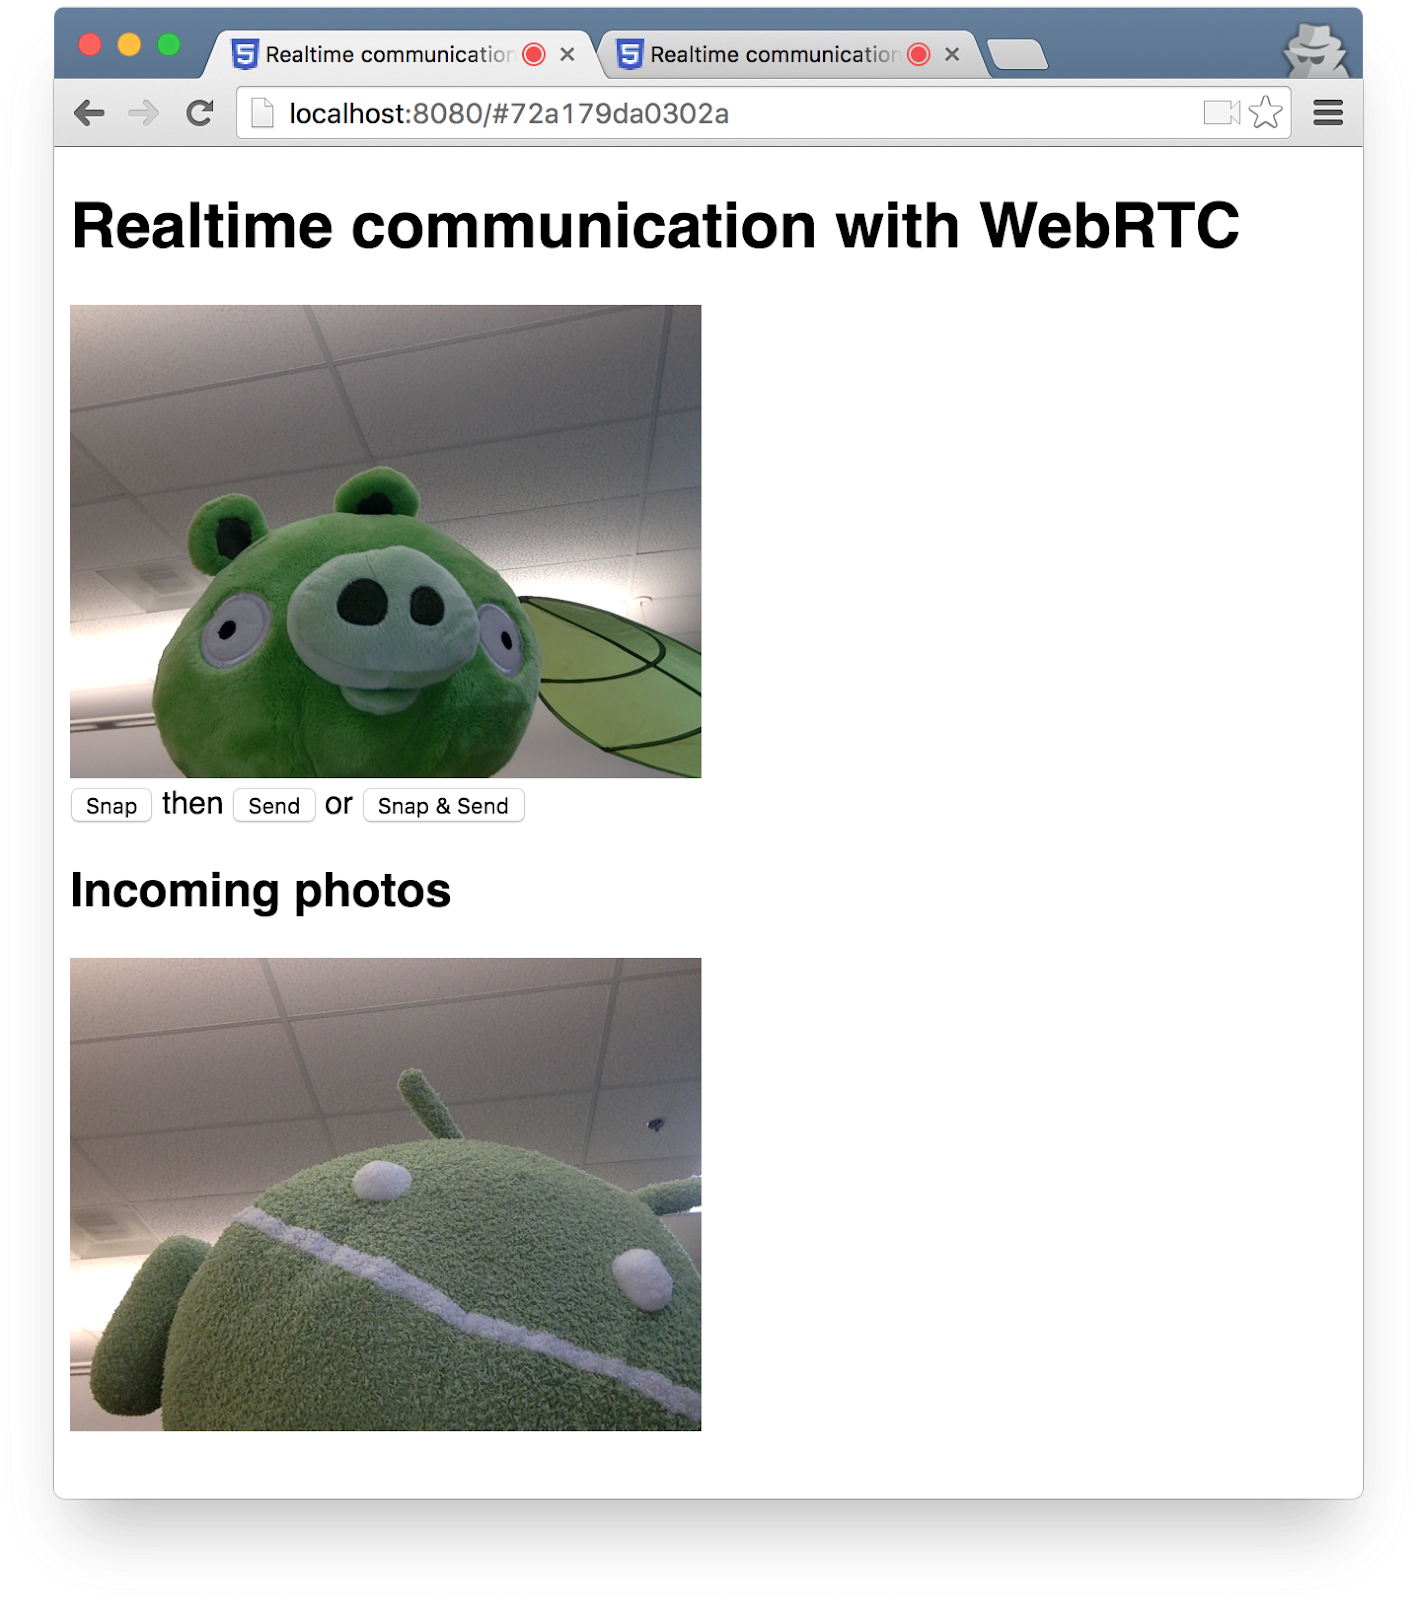 Real time communication with WebRTC